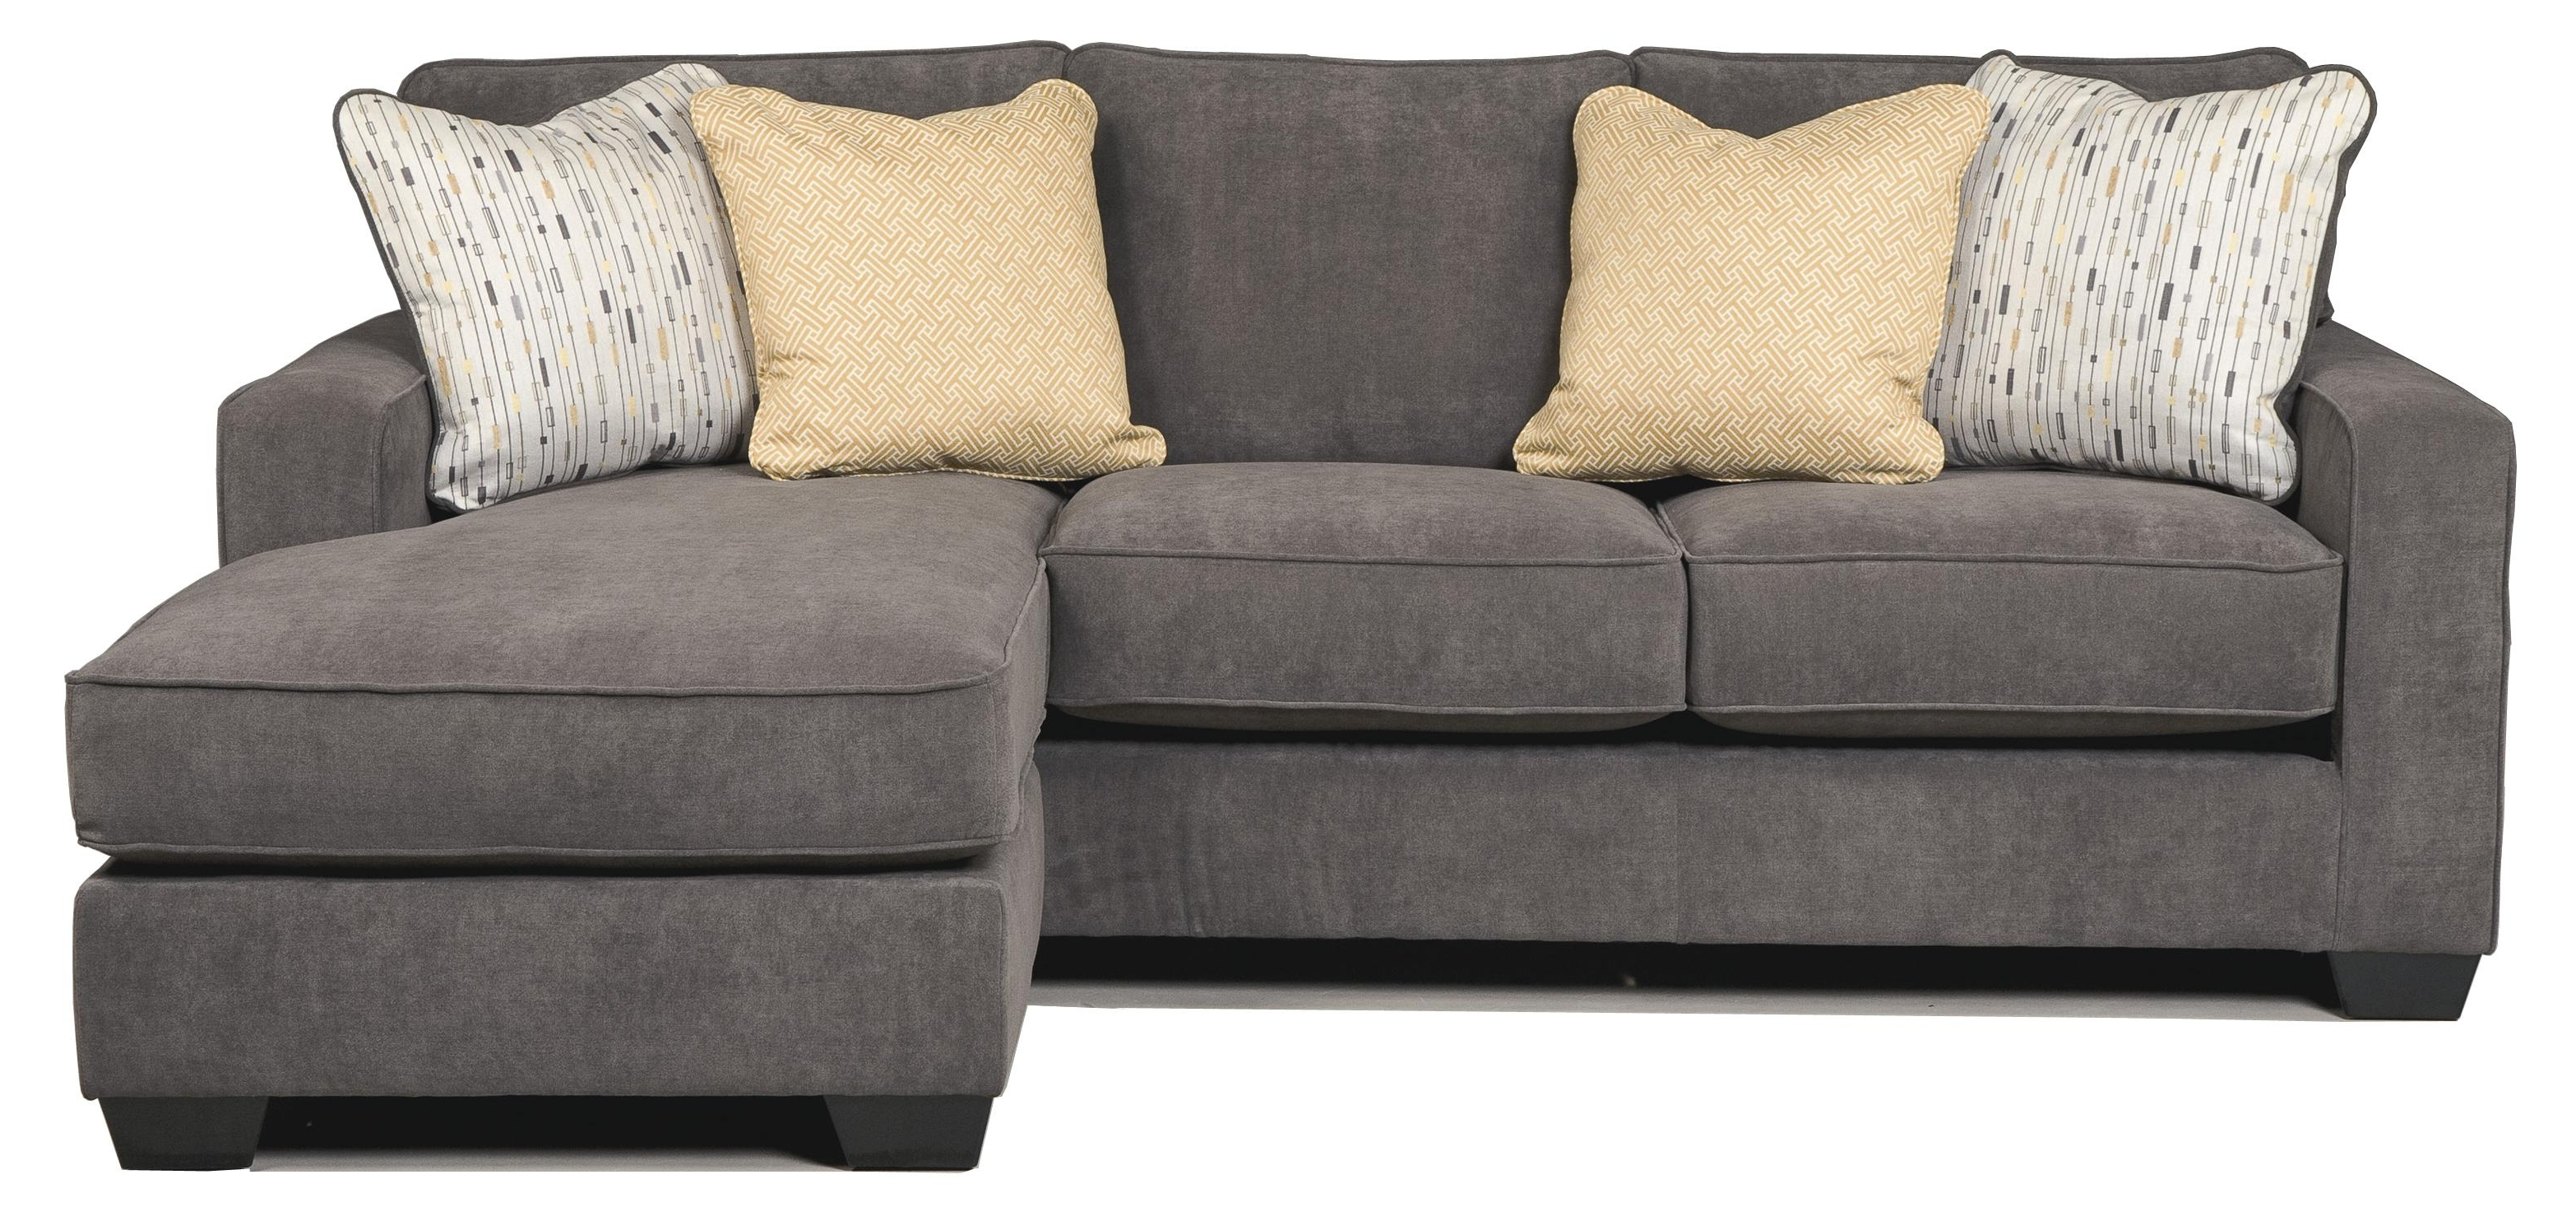 Ashley Signature Design Hodan – Marble 7970018 Contemporary Sofa Inside Widely Used Hodan Sofas With Chaise (View 6 of 15)